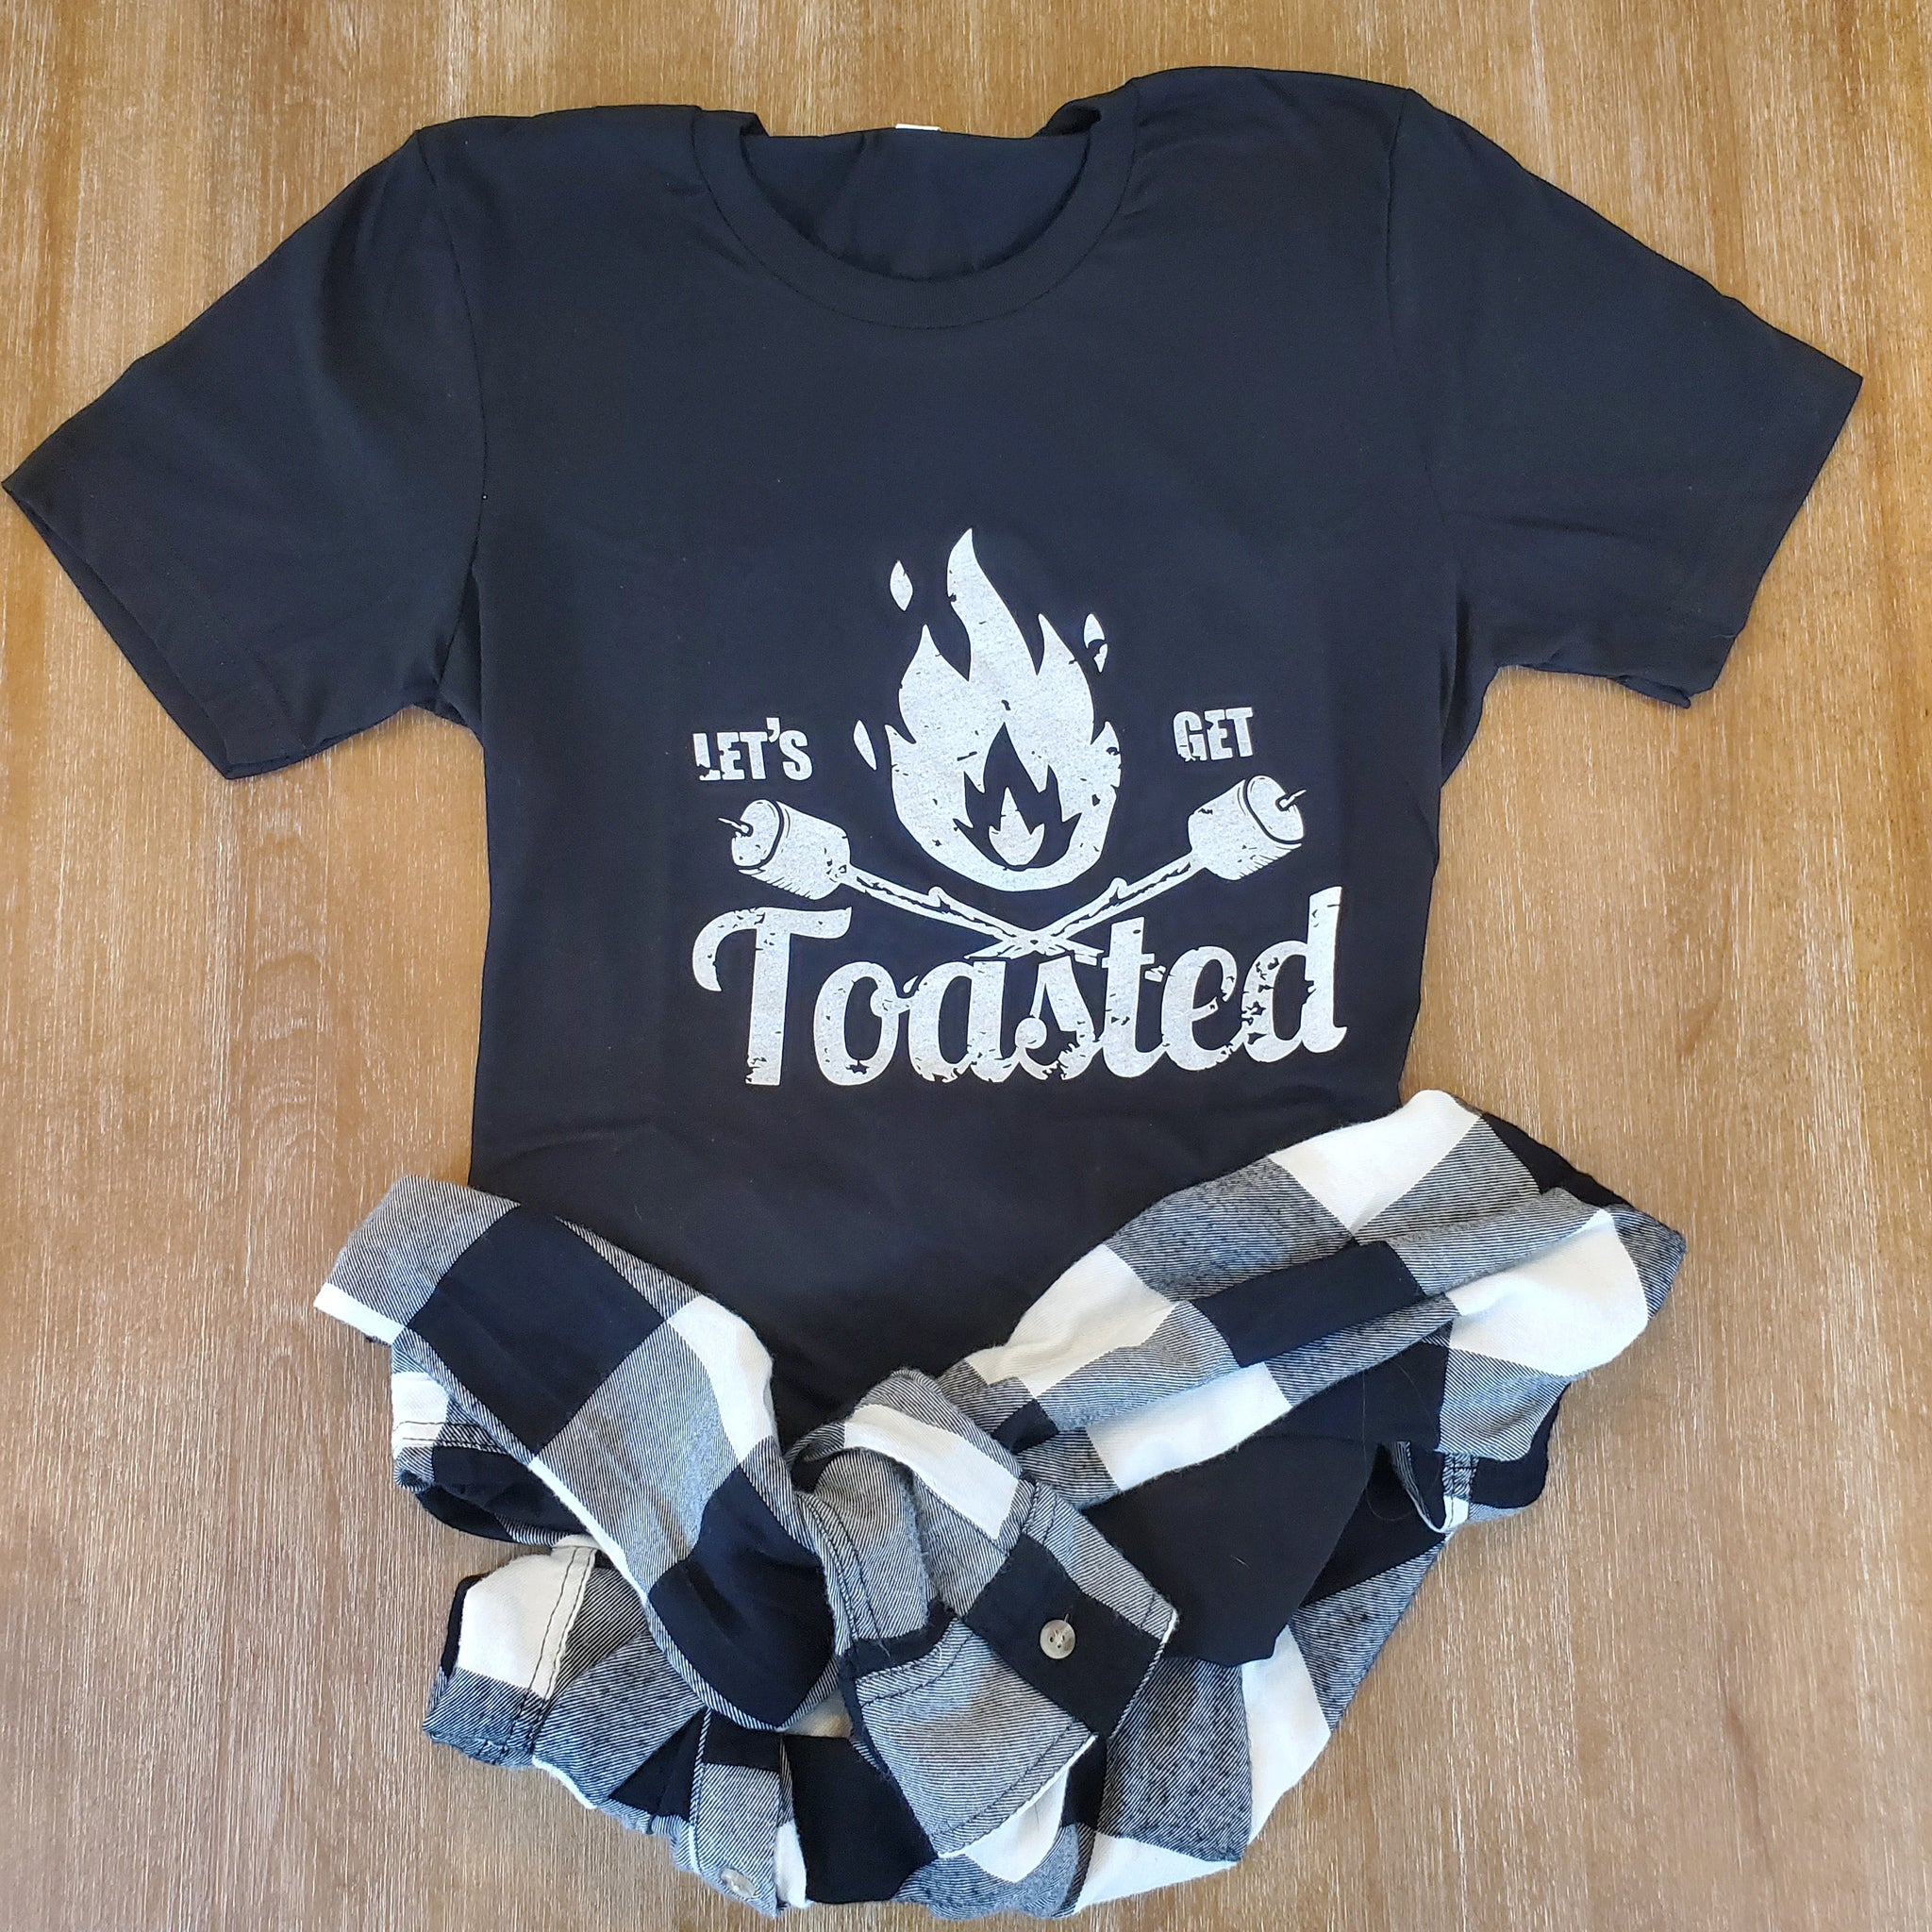 Let's Get Toasted Tee - Black